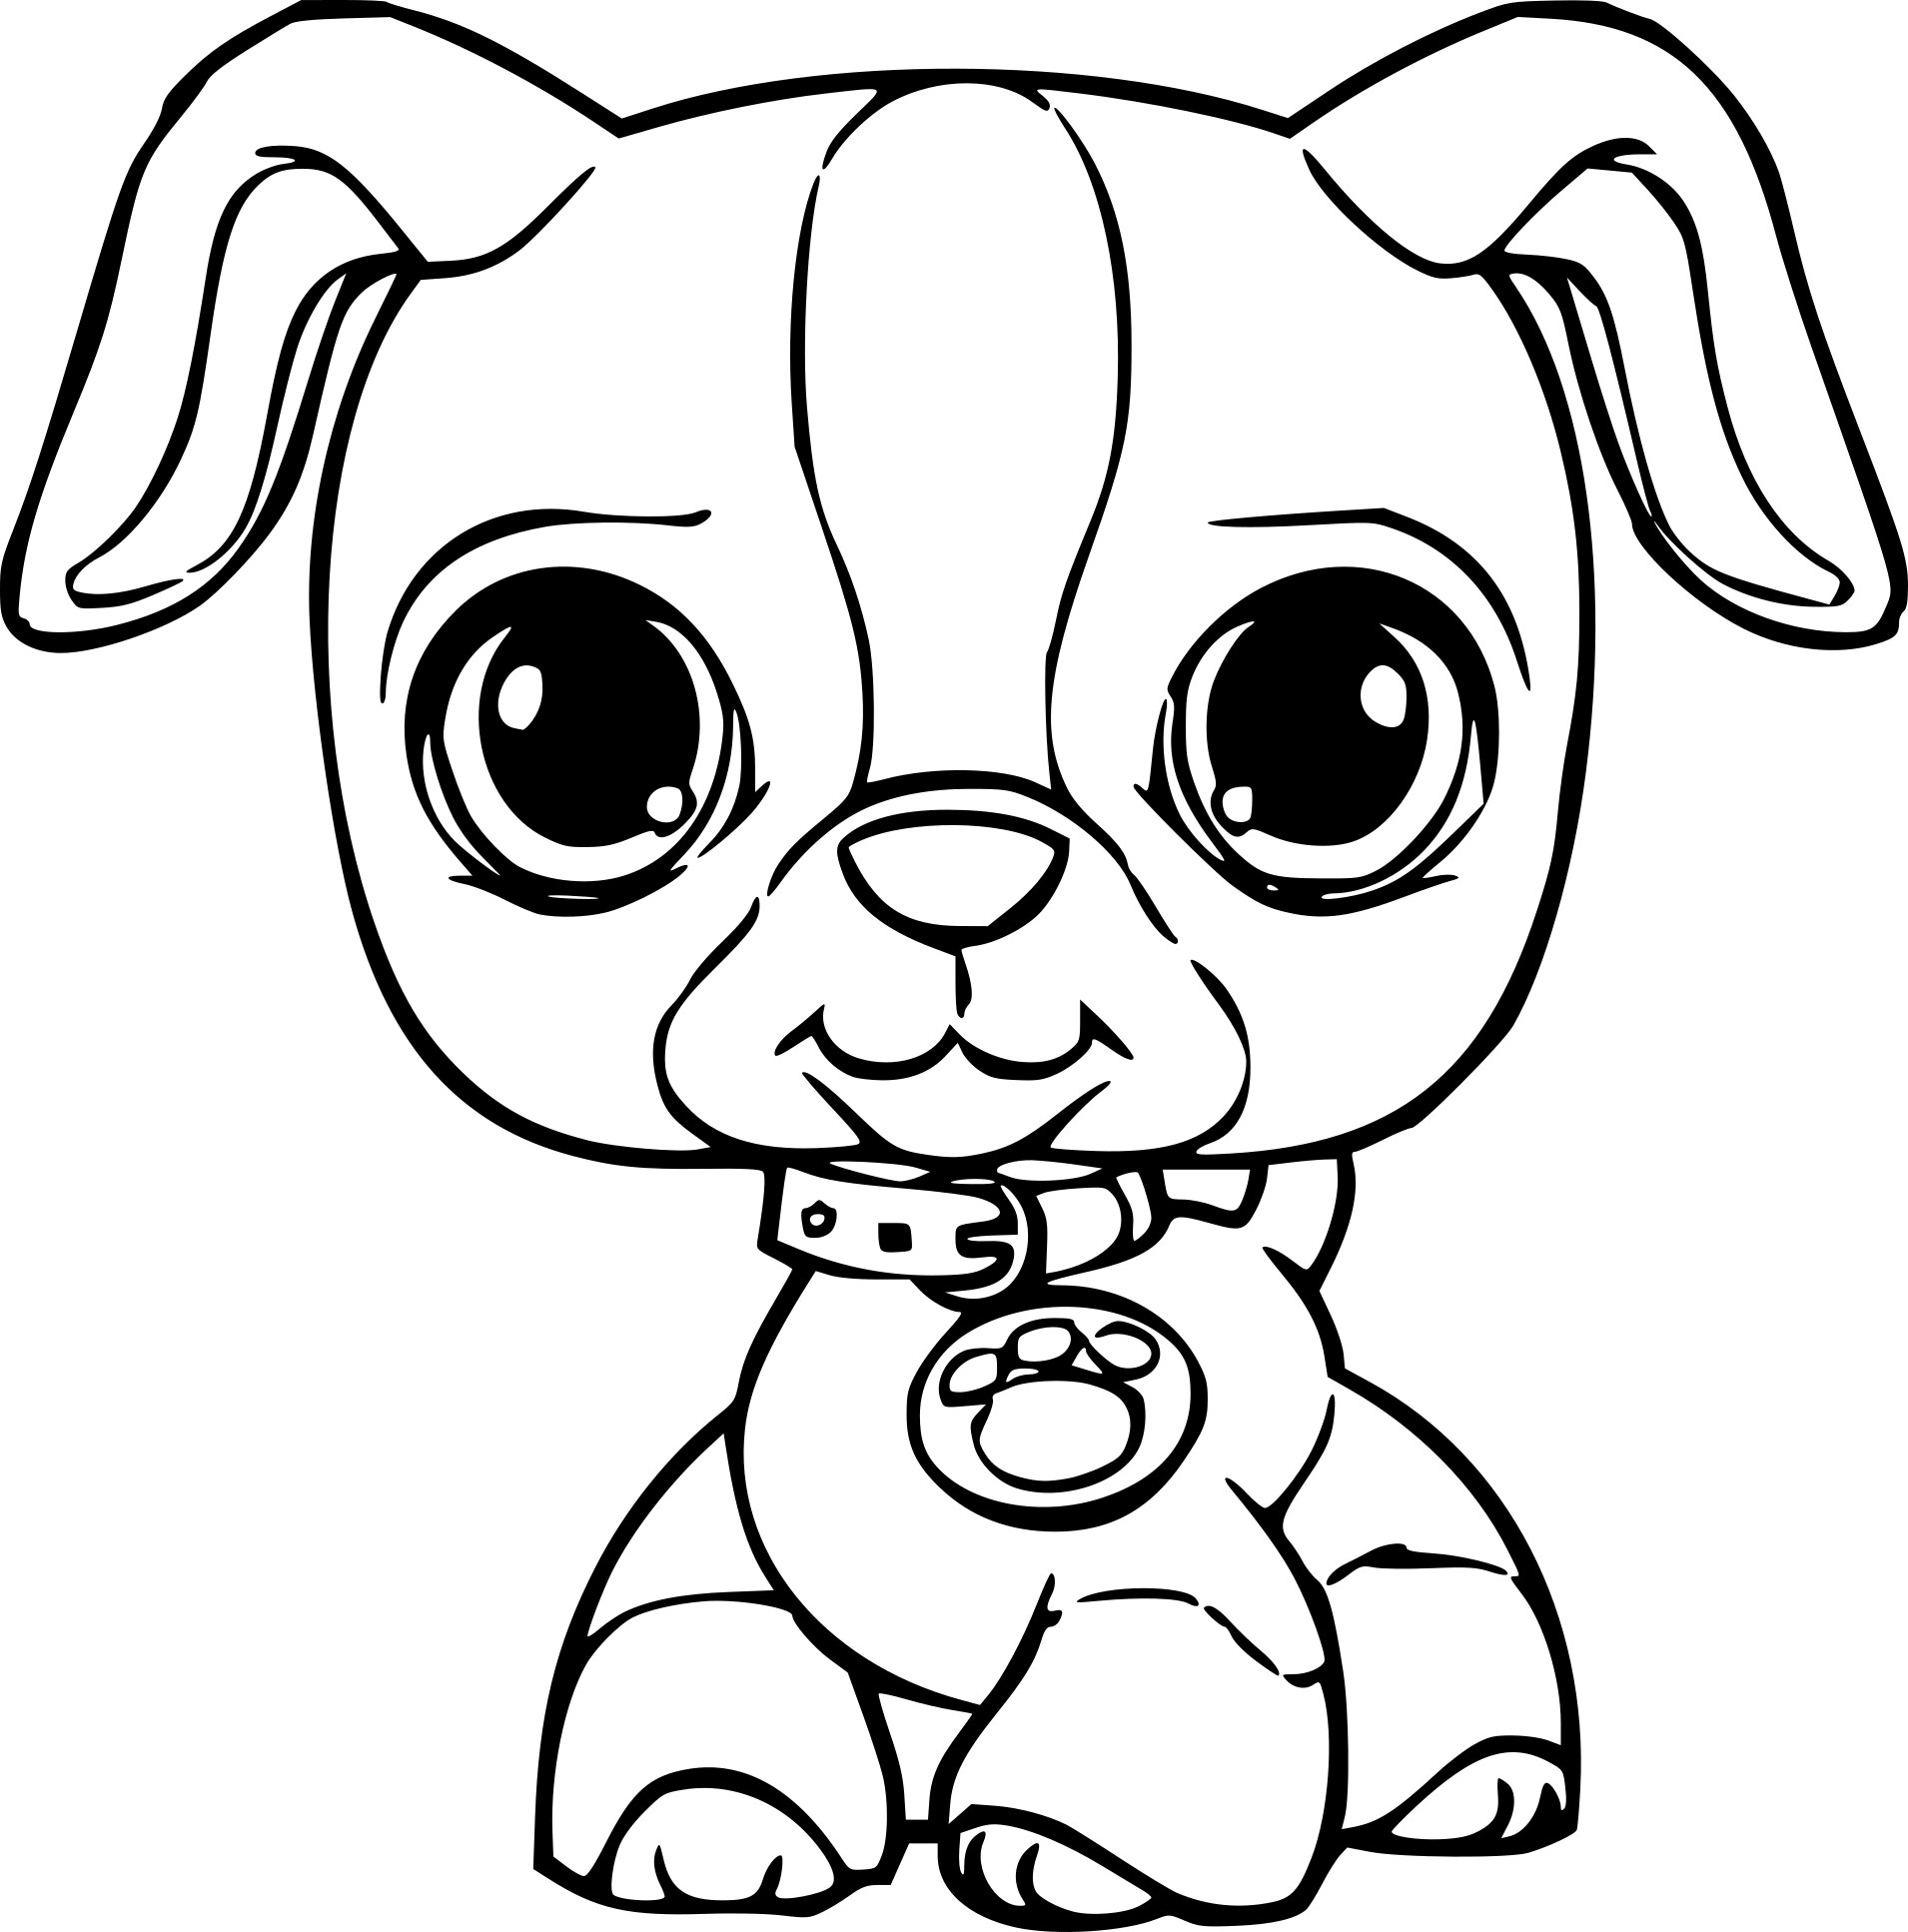 littlest pet shop coloring pages - chien petshop